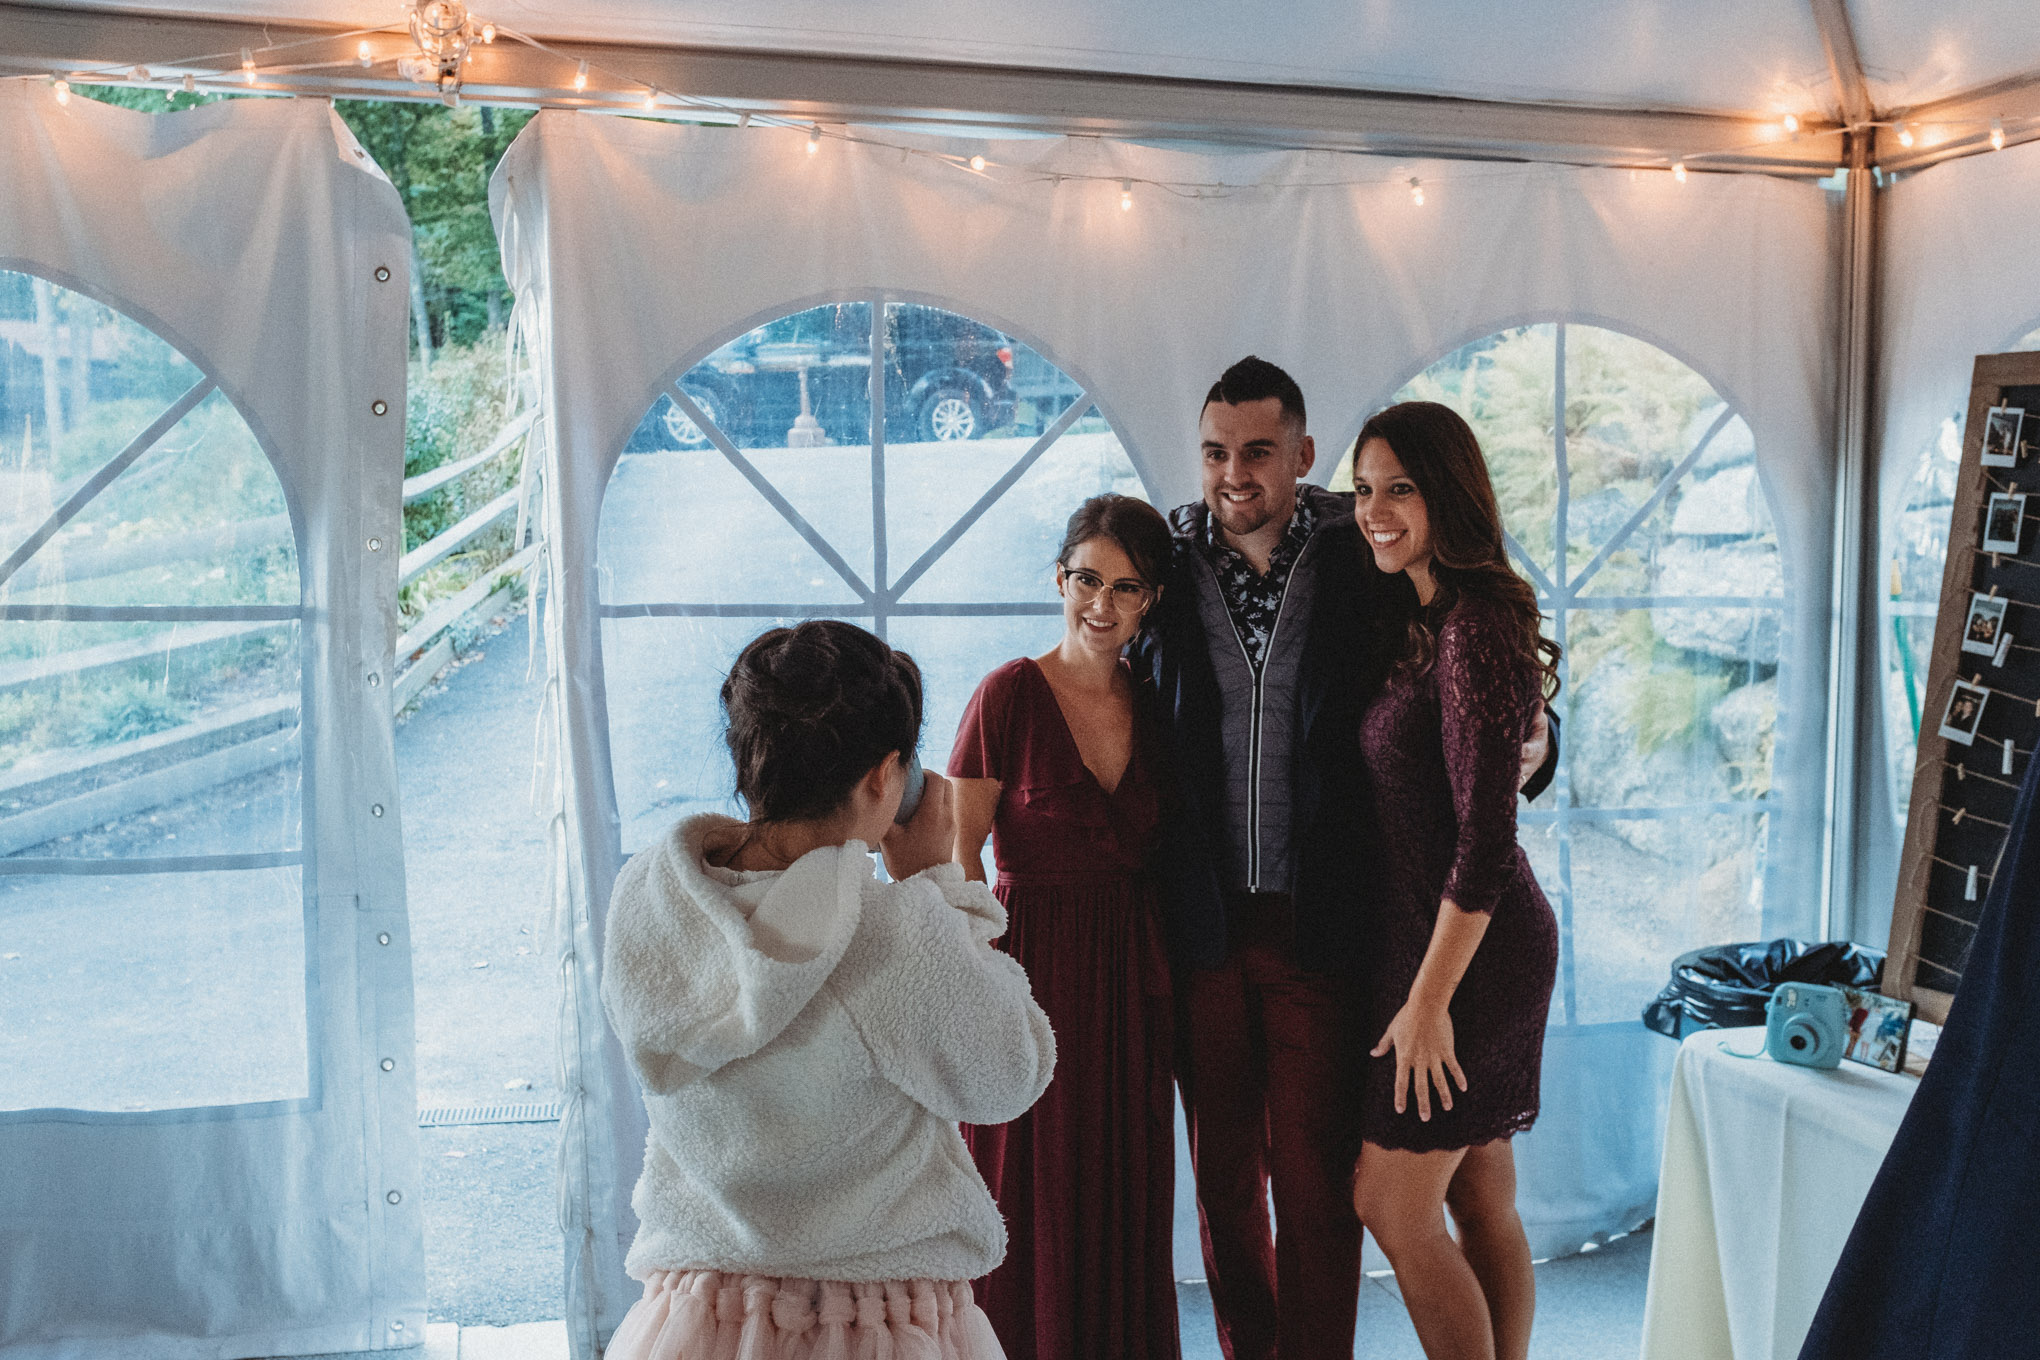 Tracy and Steve Negron pose with friends as their daughter takes a Polaroid photo.